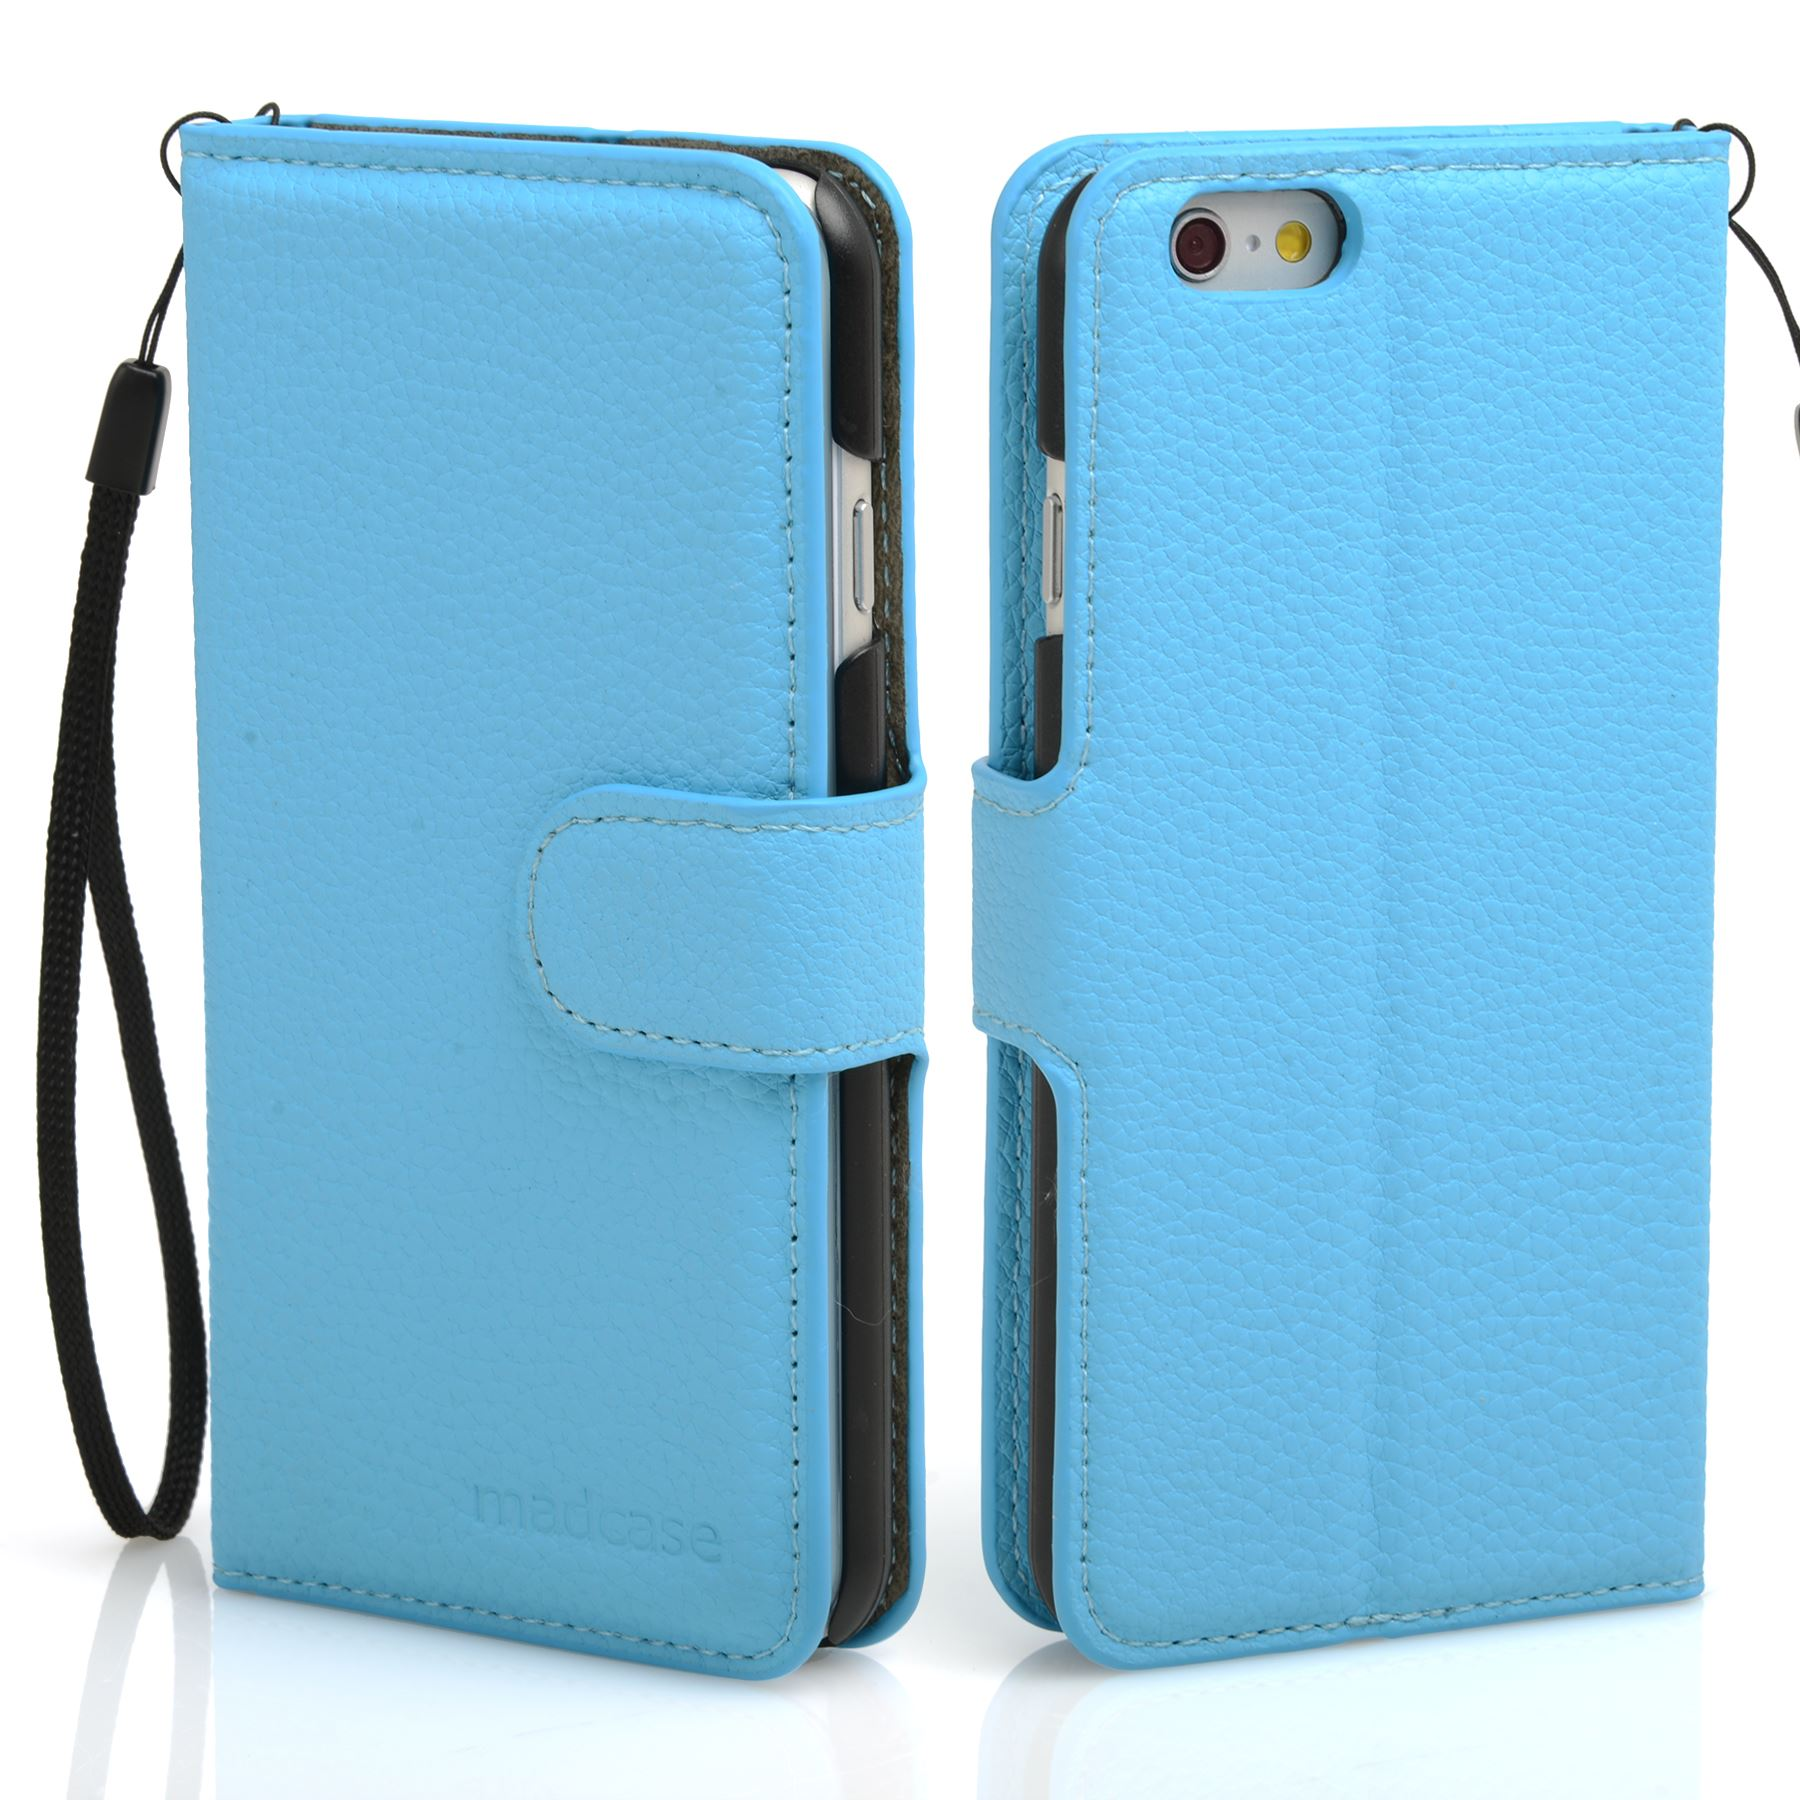 thumbnail 39 - For Apple iPhone 6s 6 Case Premium Textured Leather Wallet Madcase Cover